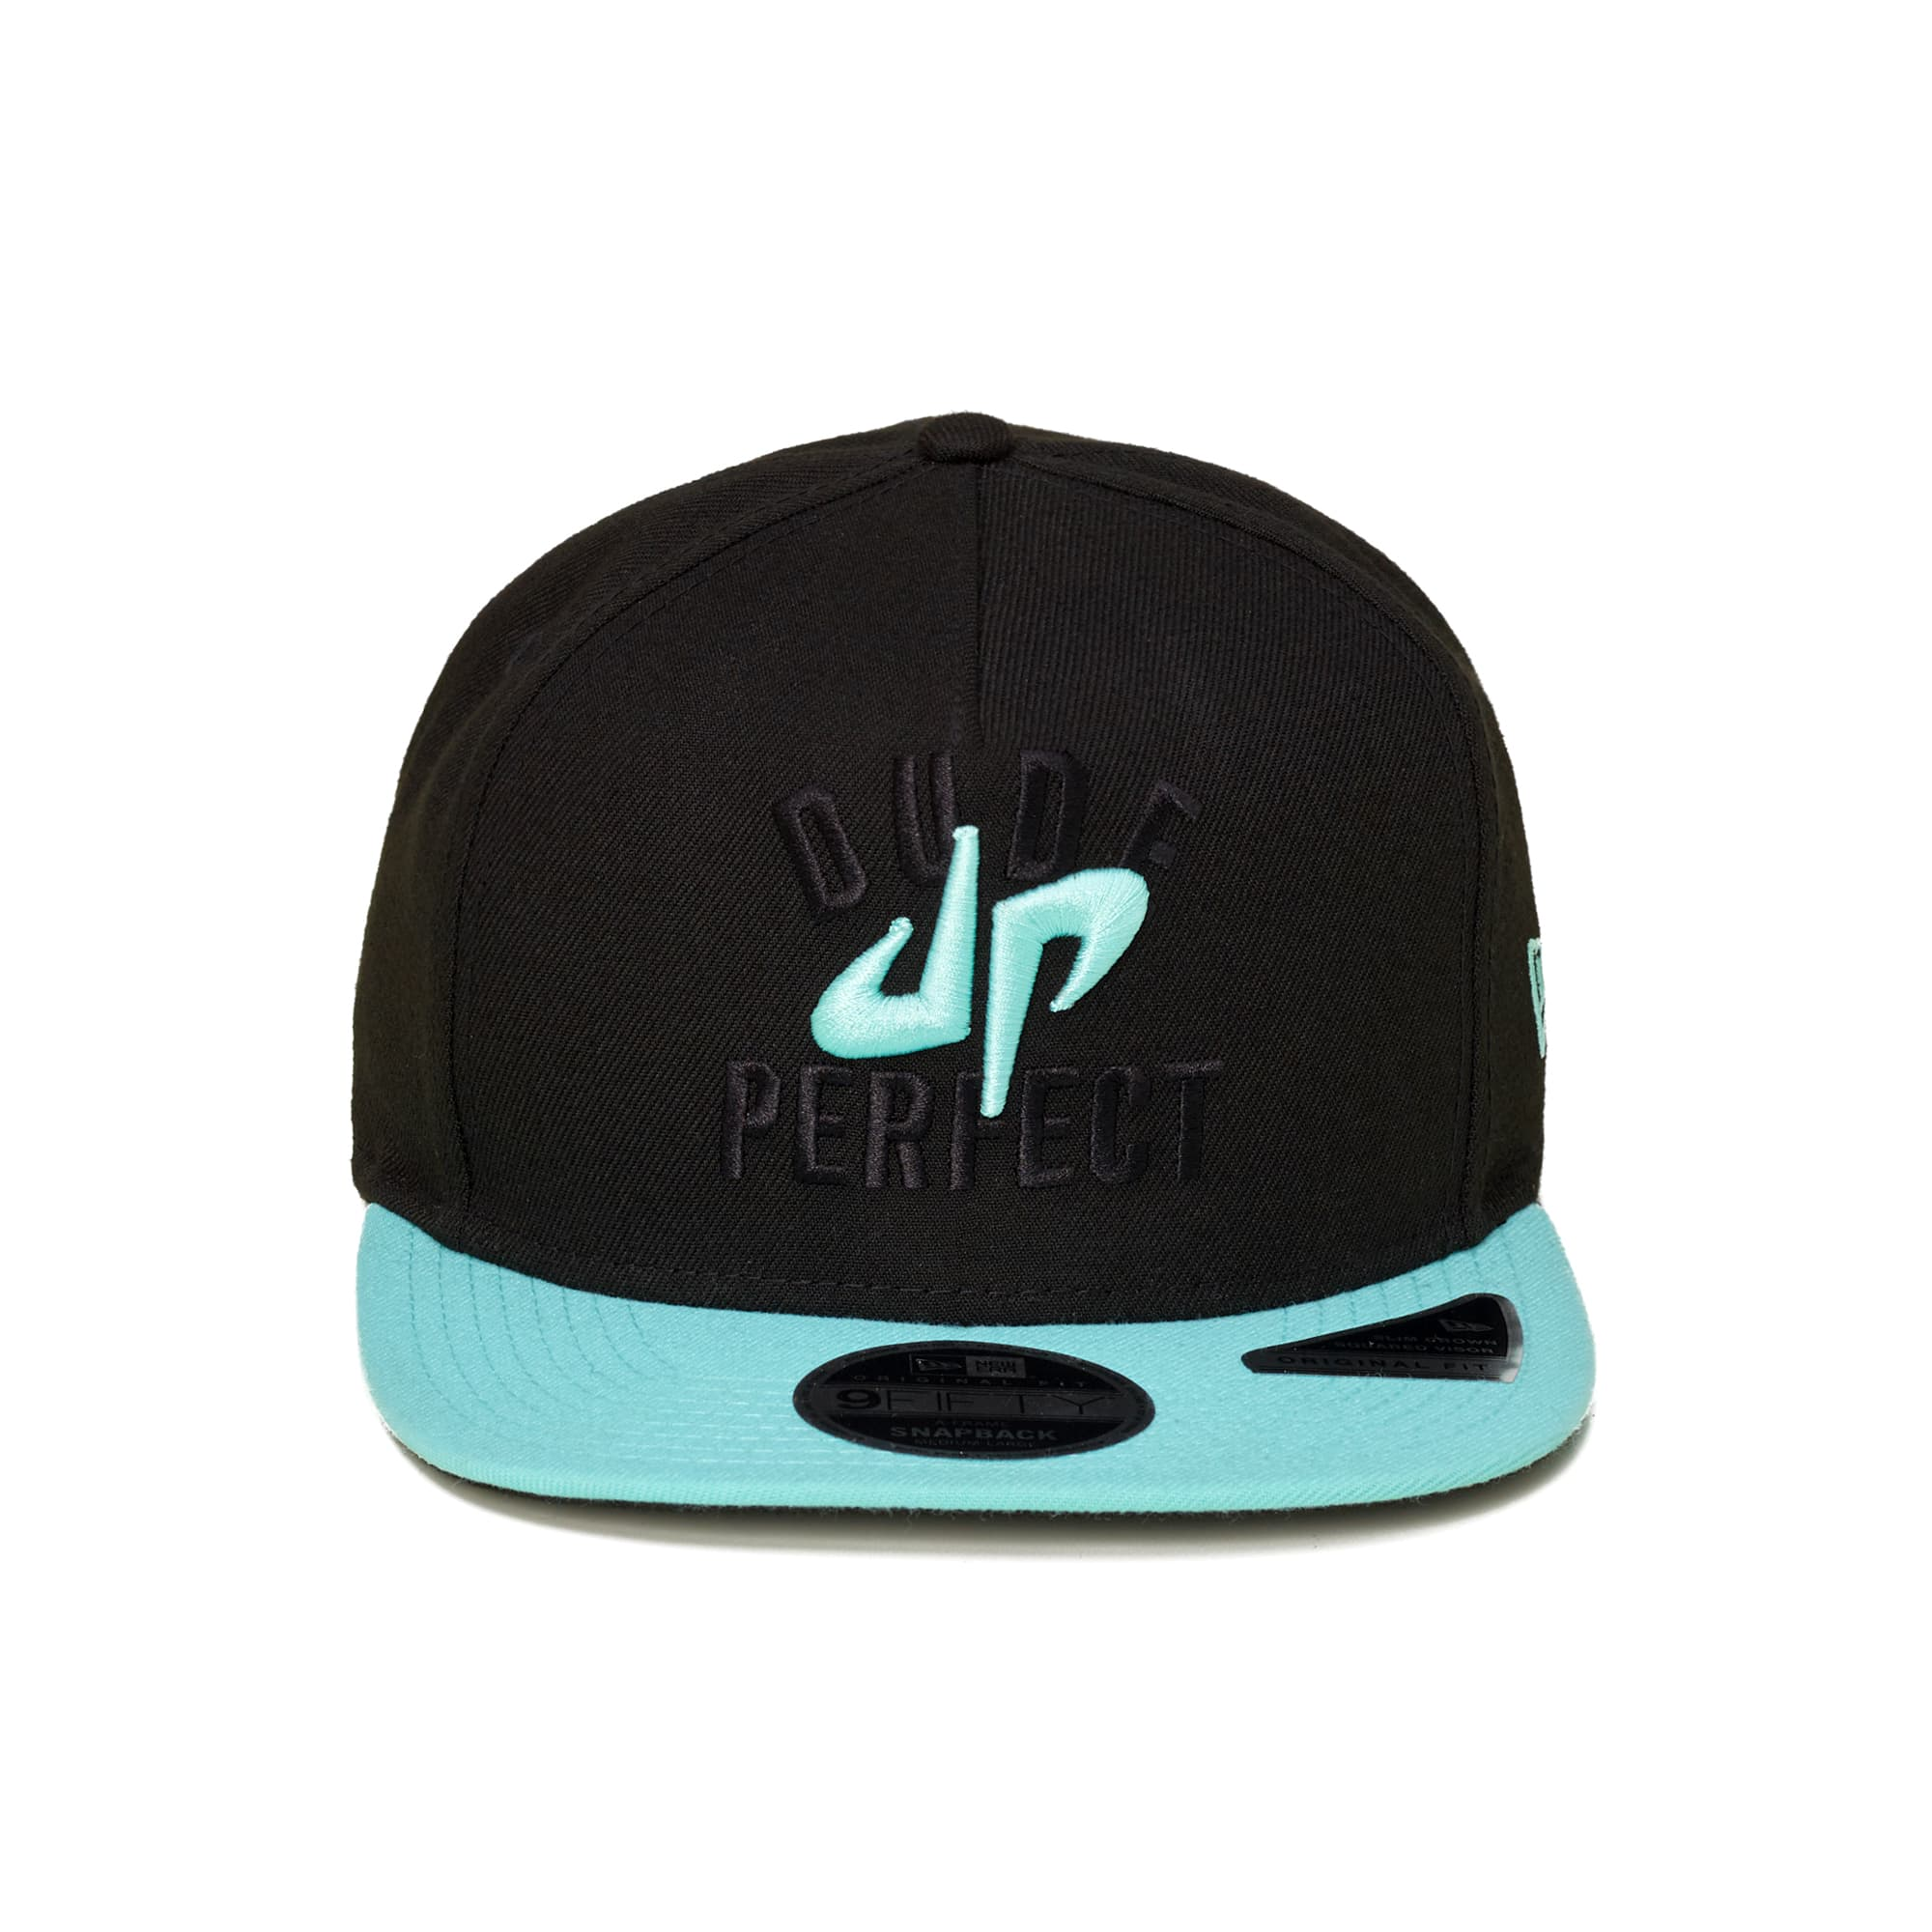 DP x New Era 'Rise Above' 9Fifty Snapback